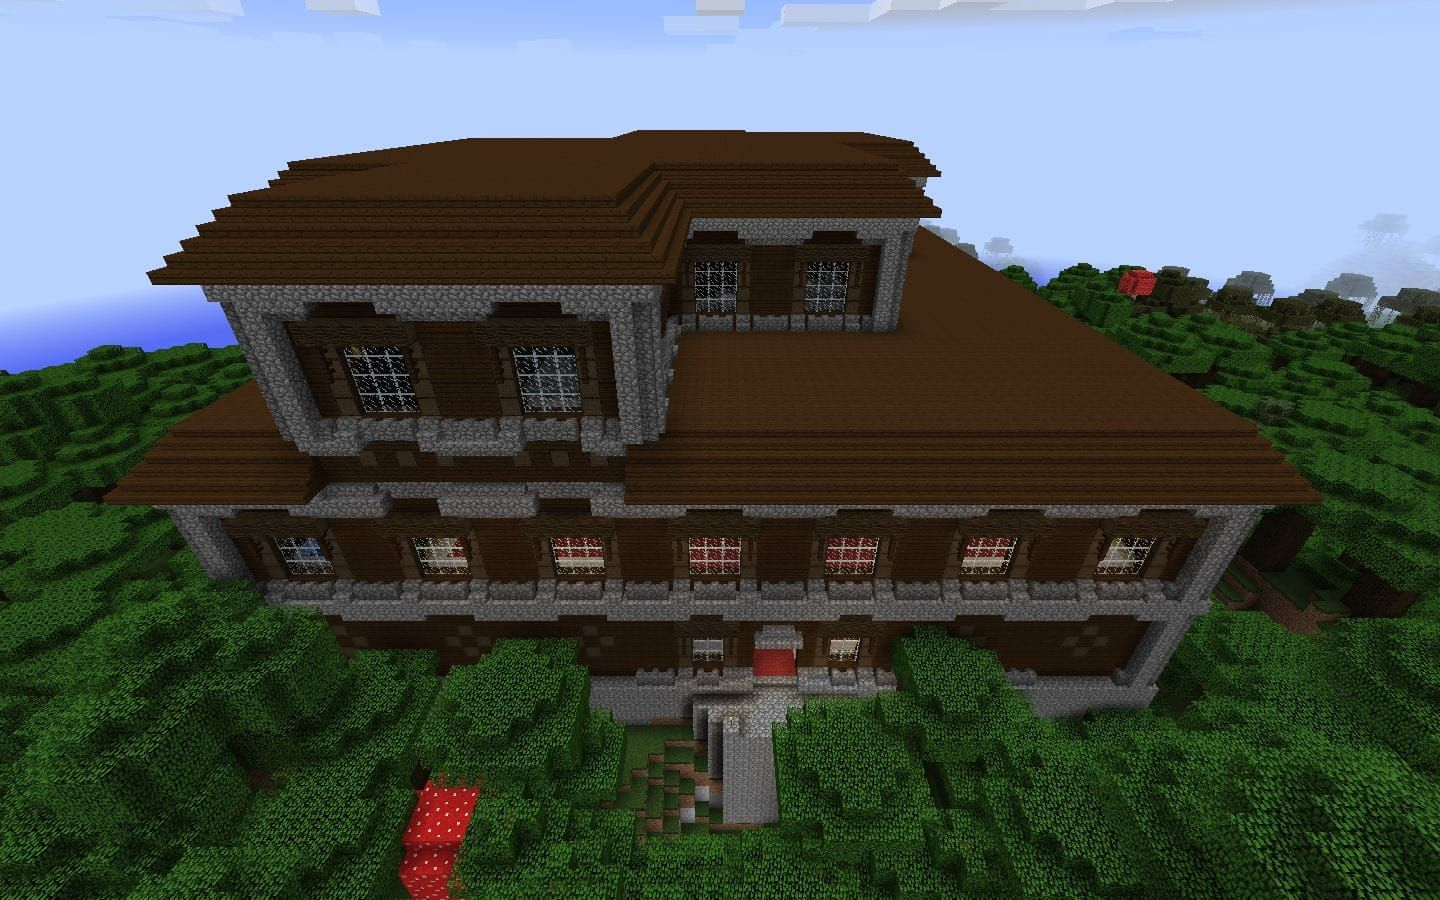 Minecraft Mansion Seed For Pc Mac Spawn On The Edge Of A